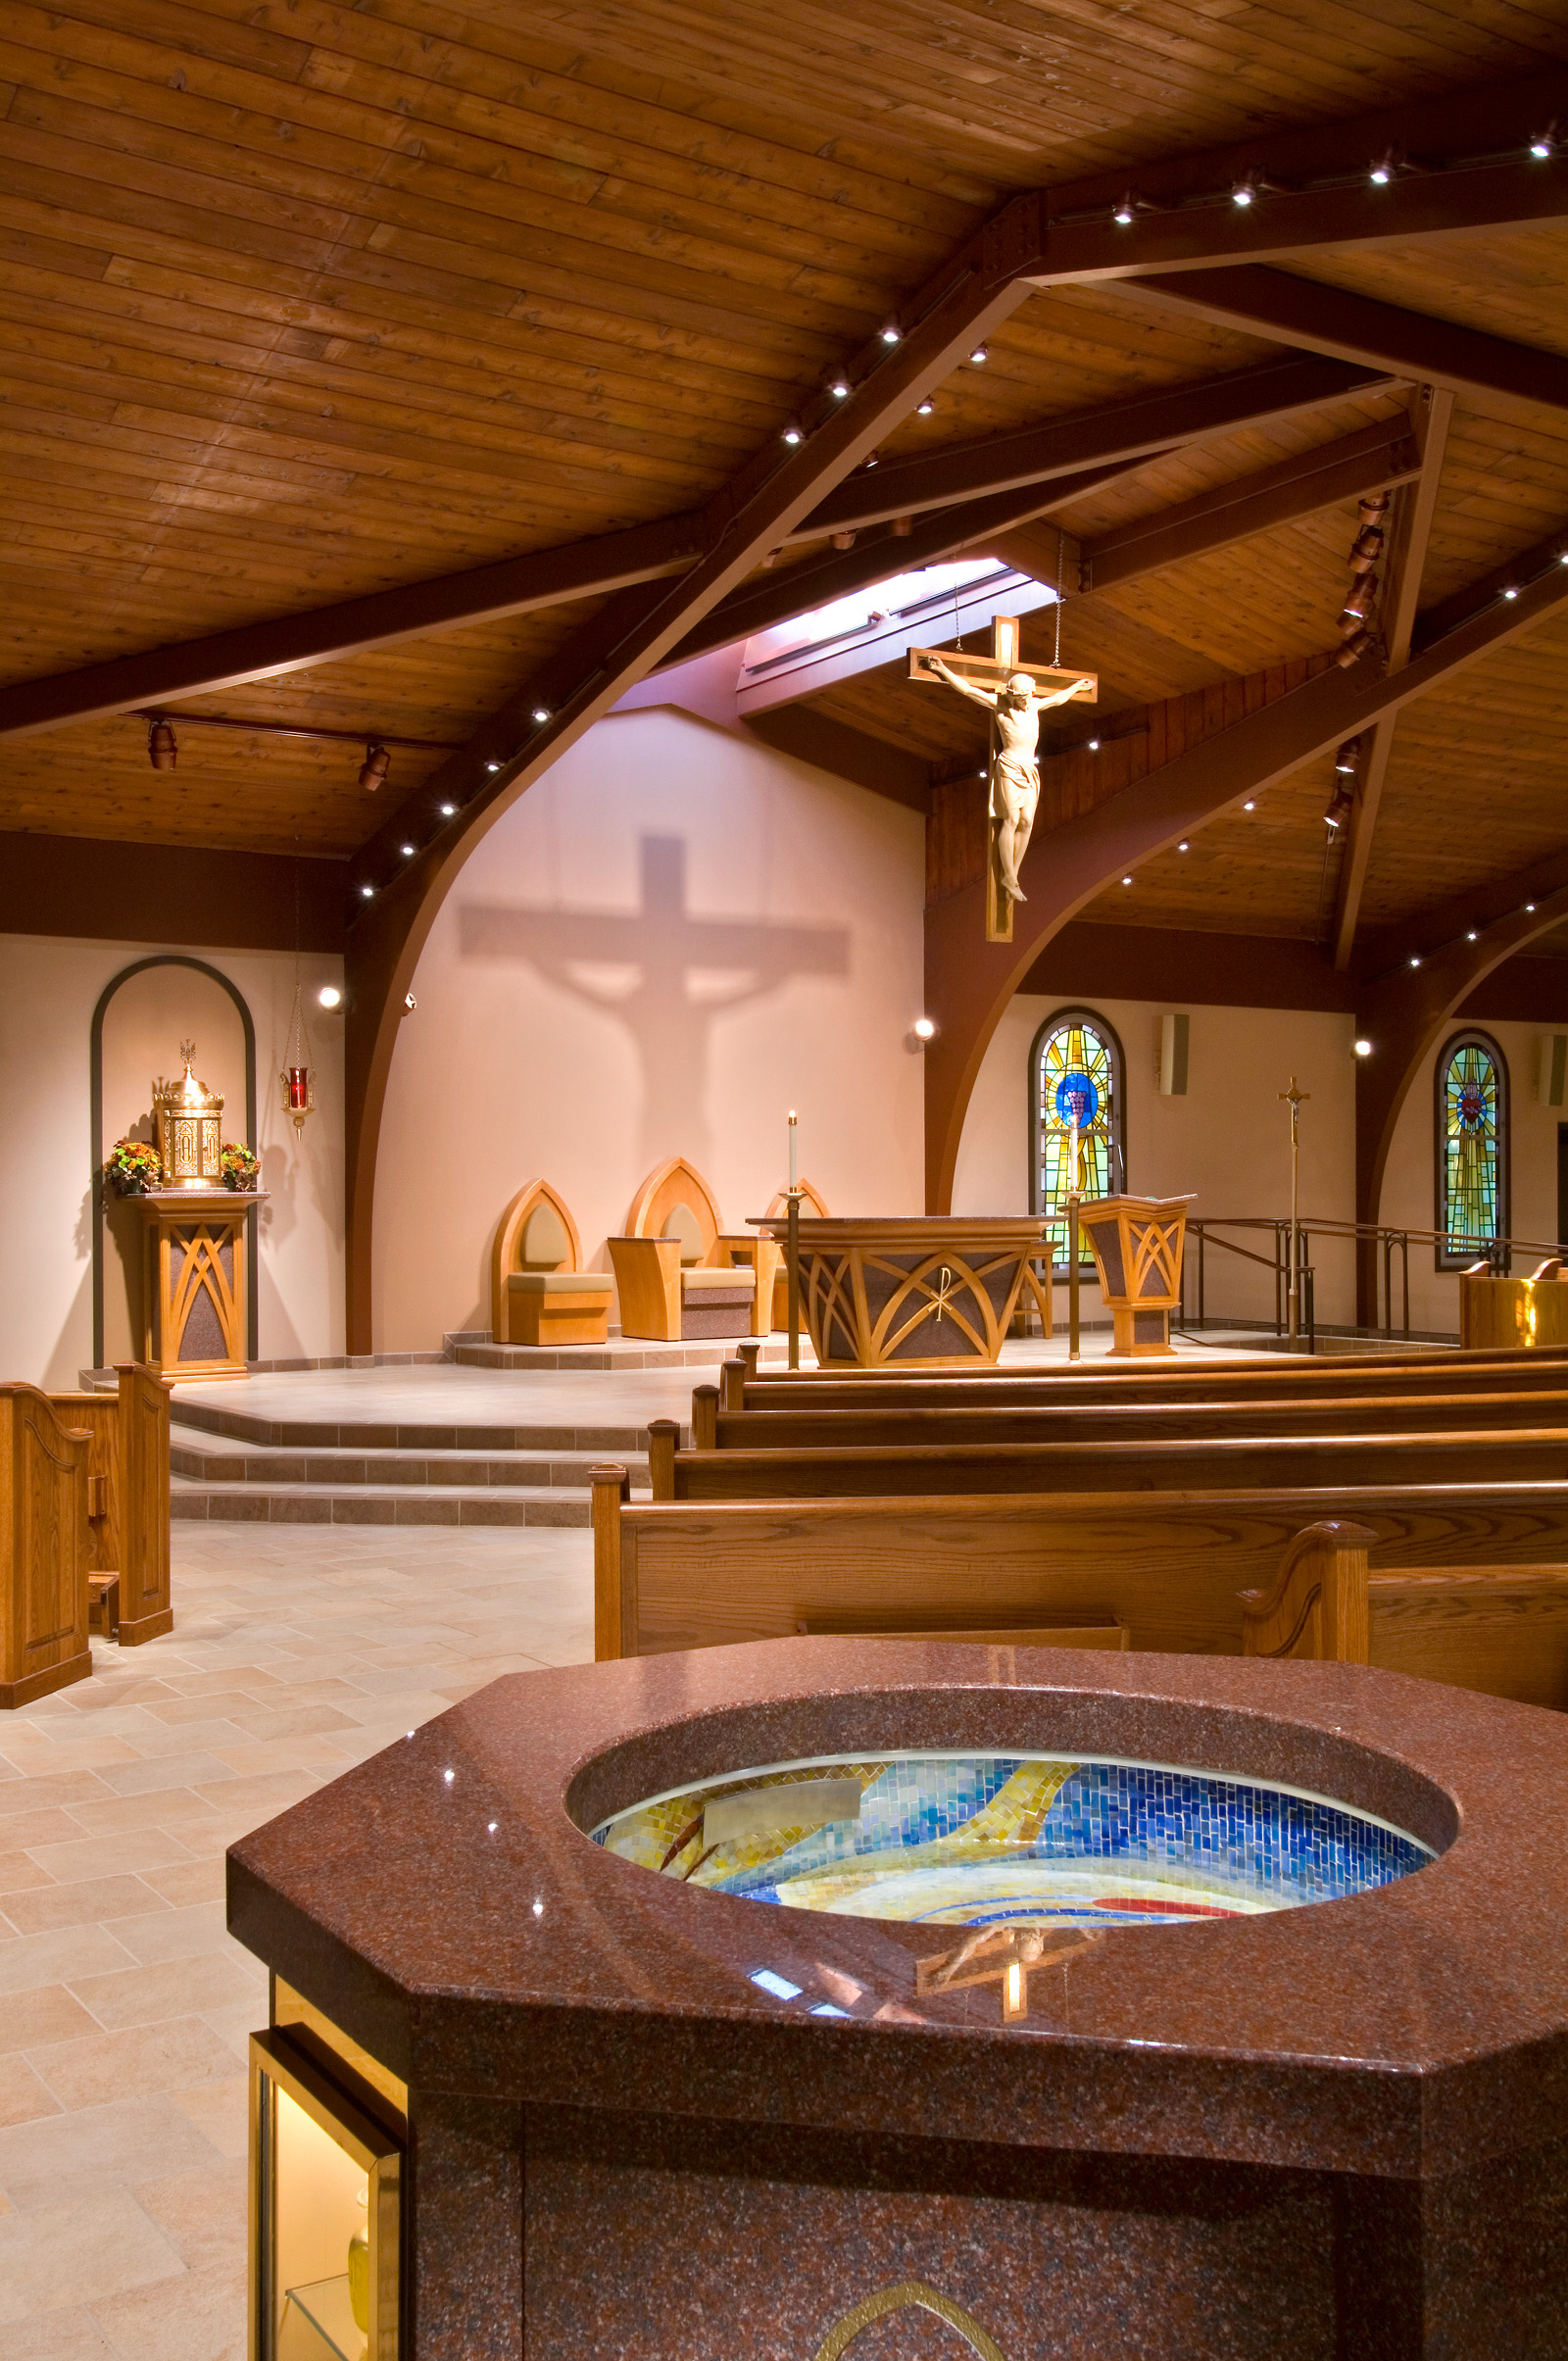 new skylight over altar and new liturgical furnishings